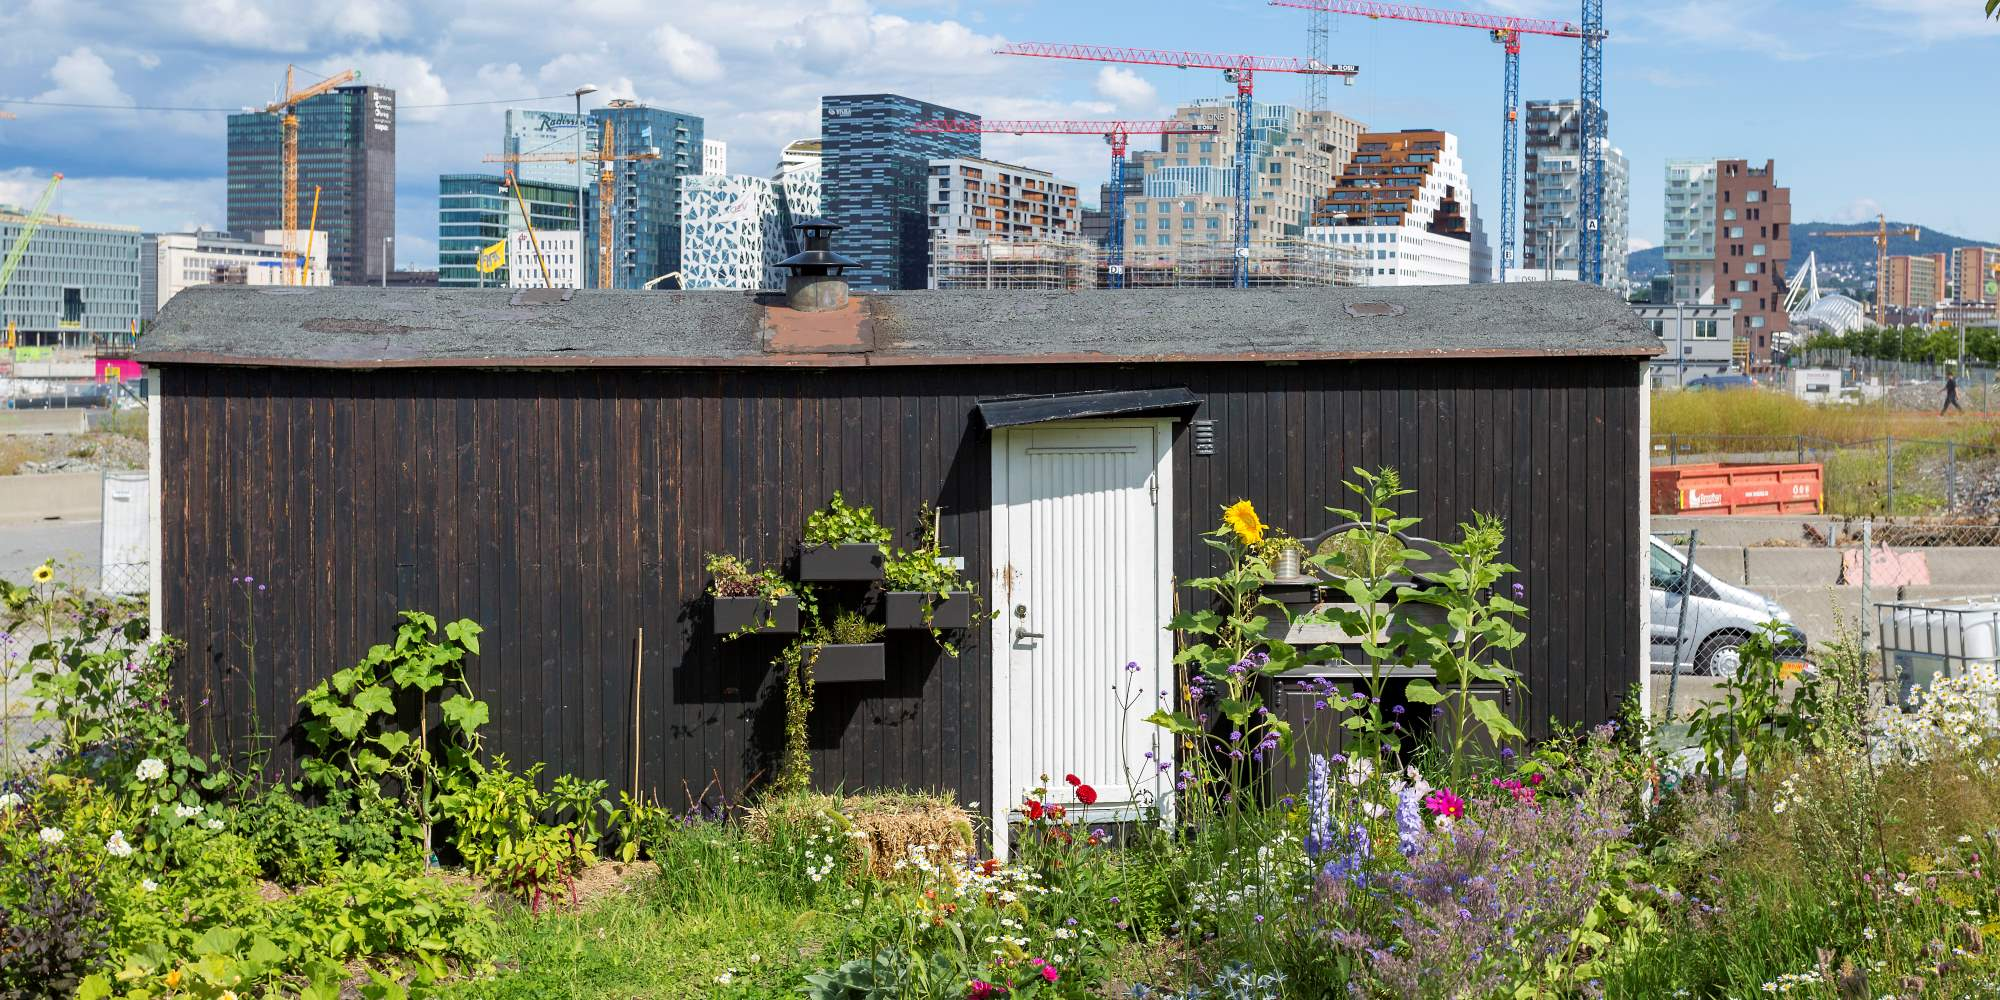 Losæter urban farm at Sørenga